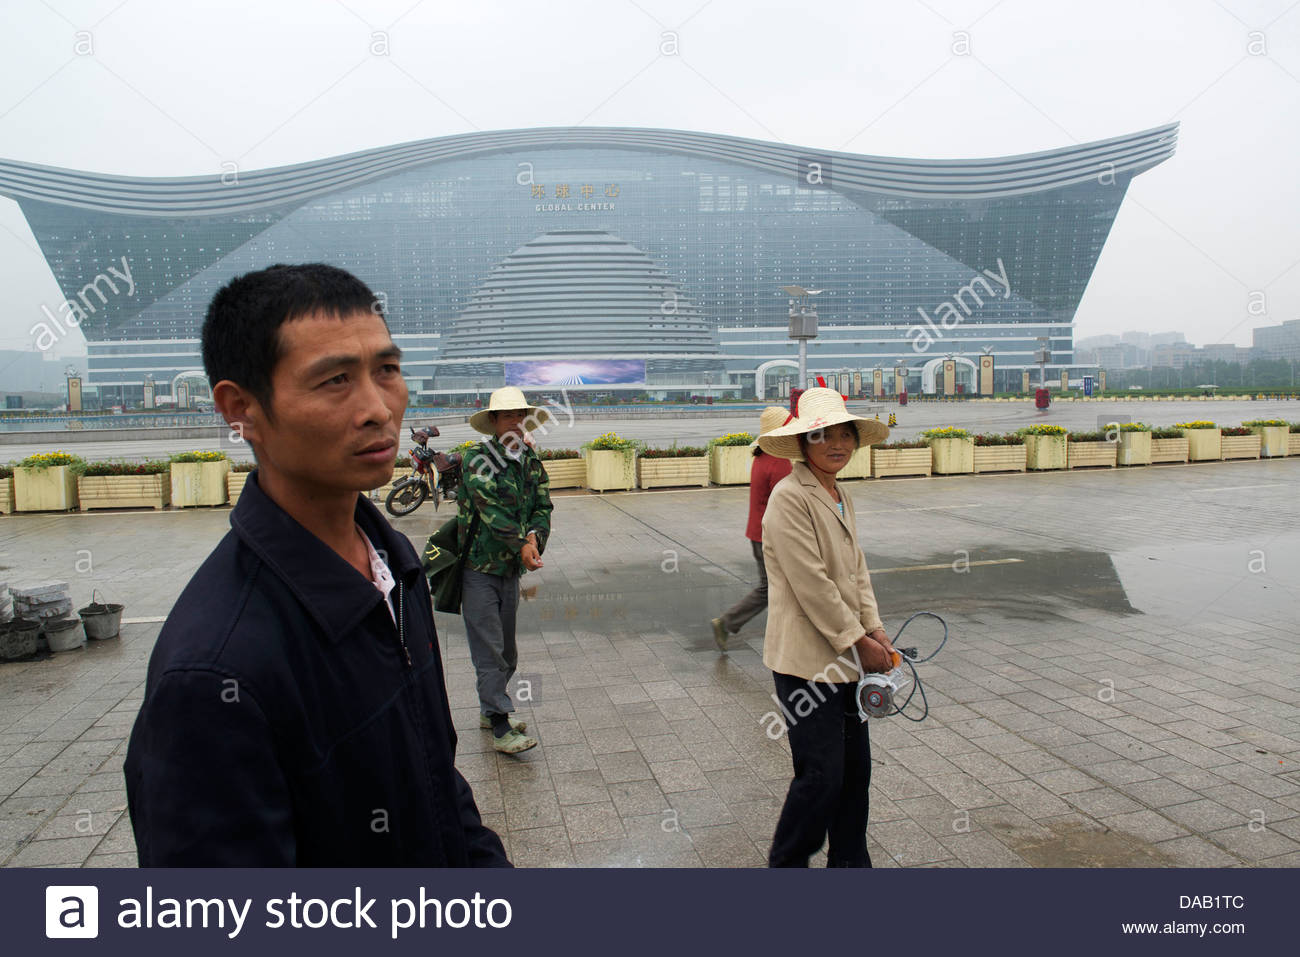 Zhang Haiquang, a worker for the construction of New Century Global Centre in Chengdu, Sichuan province, China. - Stock Image